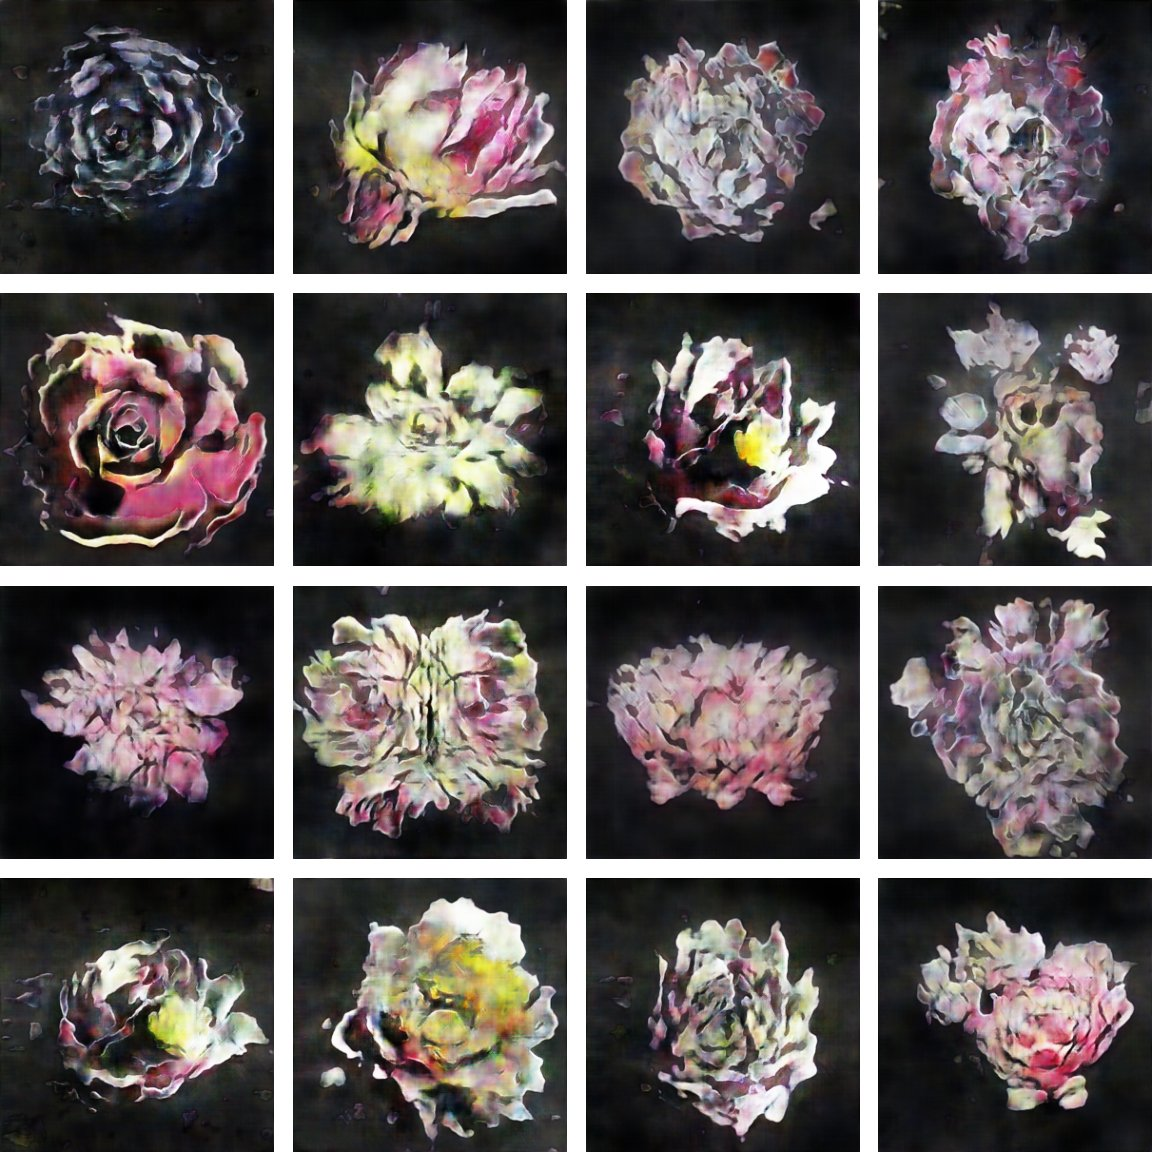 AI-generated Sempervivum images